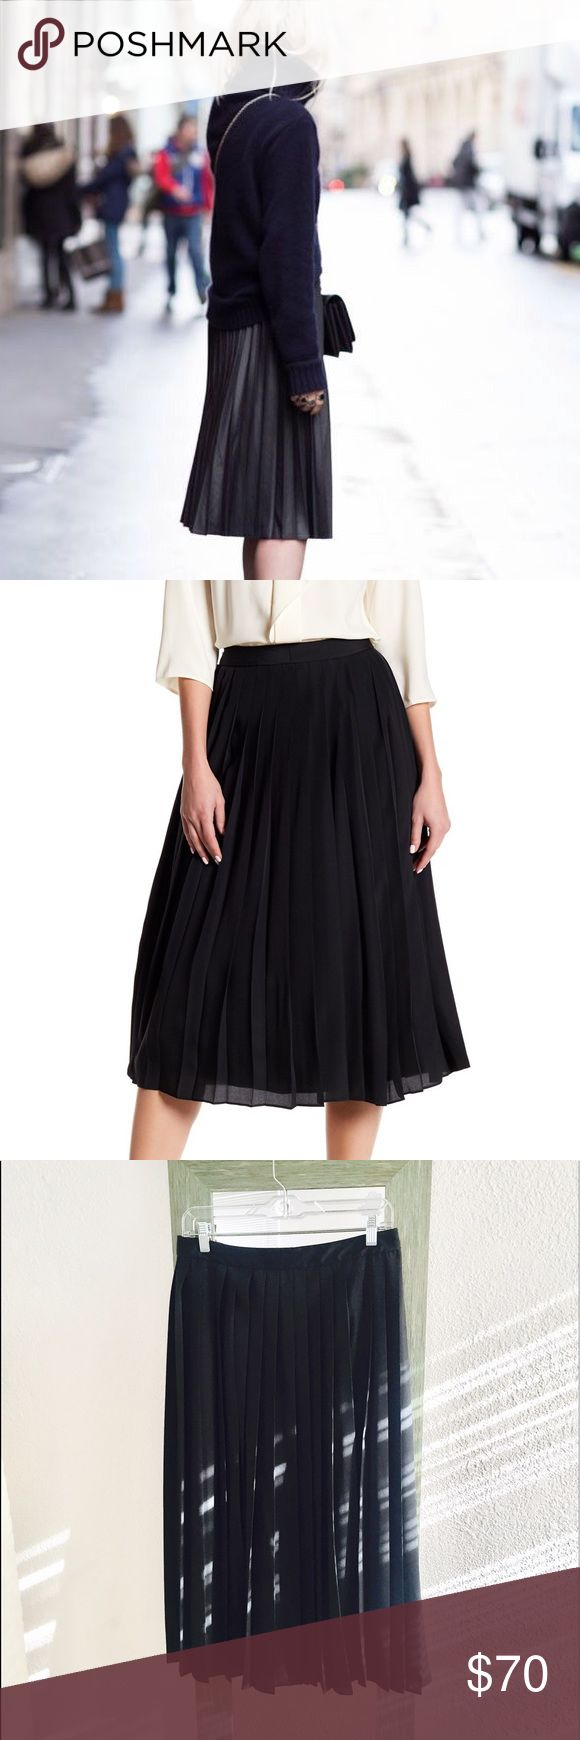 Pleated black midi skirt Size 6 NWT , black pleated midi skirt, lined 100% polyester, Bough in Nordstrom Skirts Midi